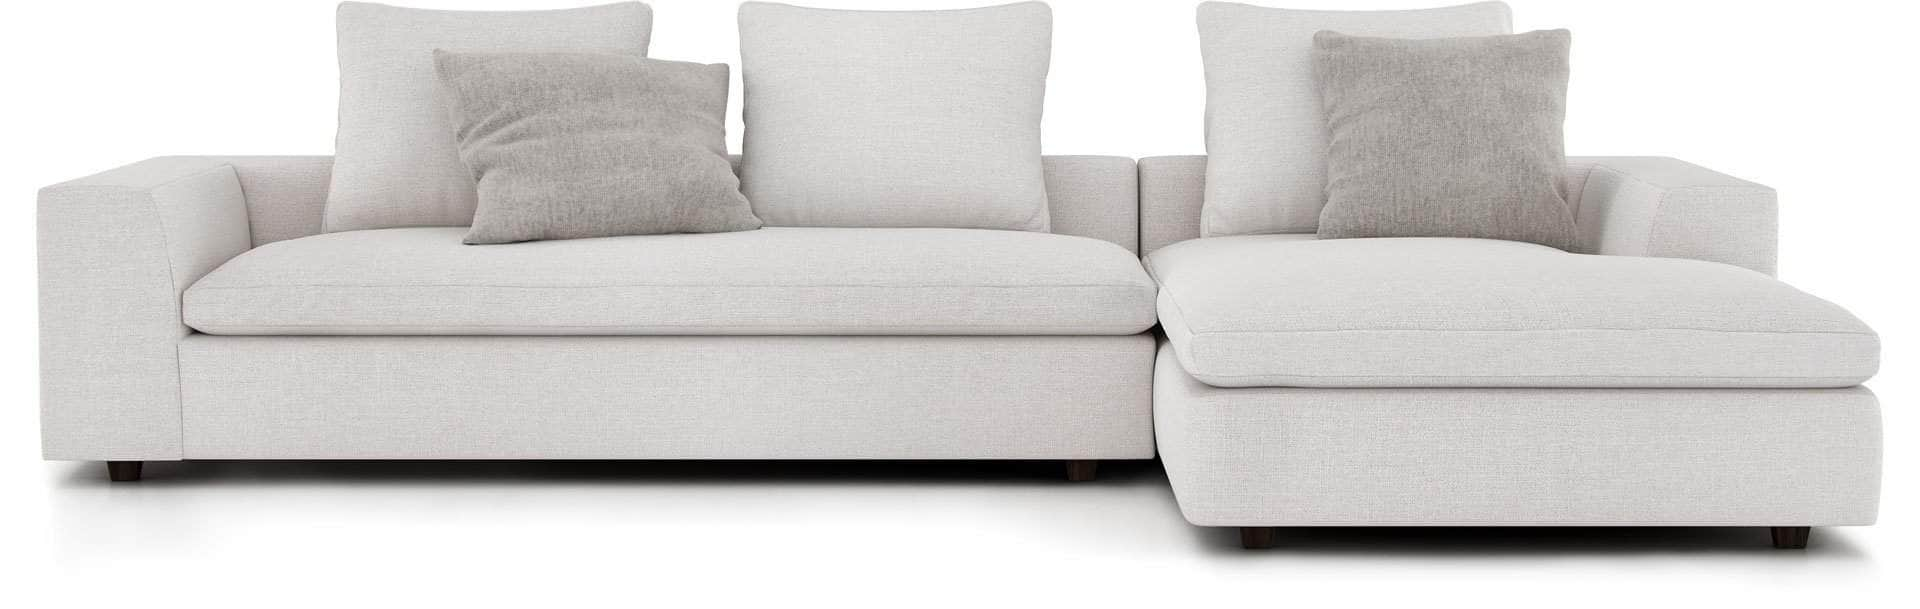 Pending - Modloft Sectionals Left Lucerne Sectional Sofa in Ashen Fabric - Available in 2 Styles